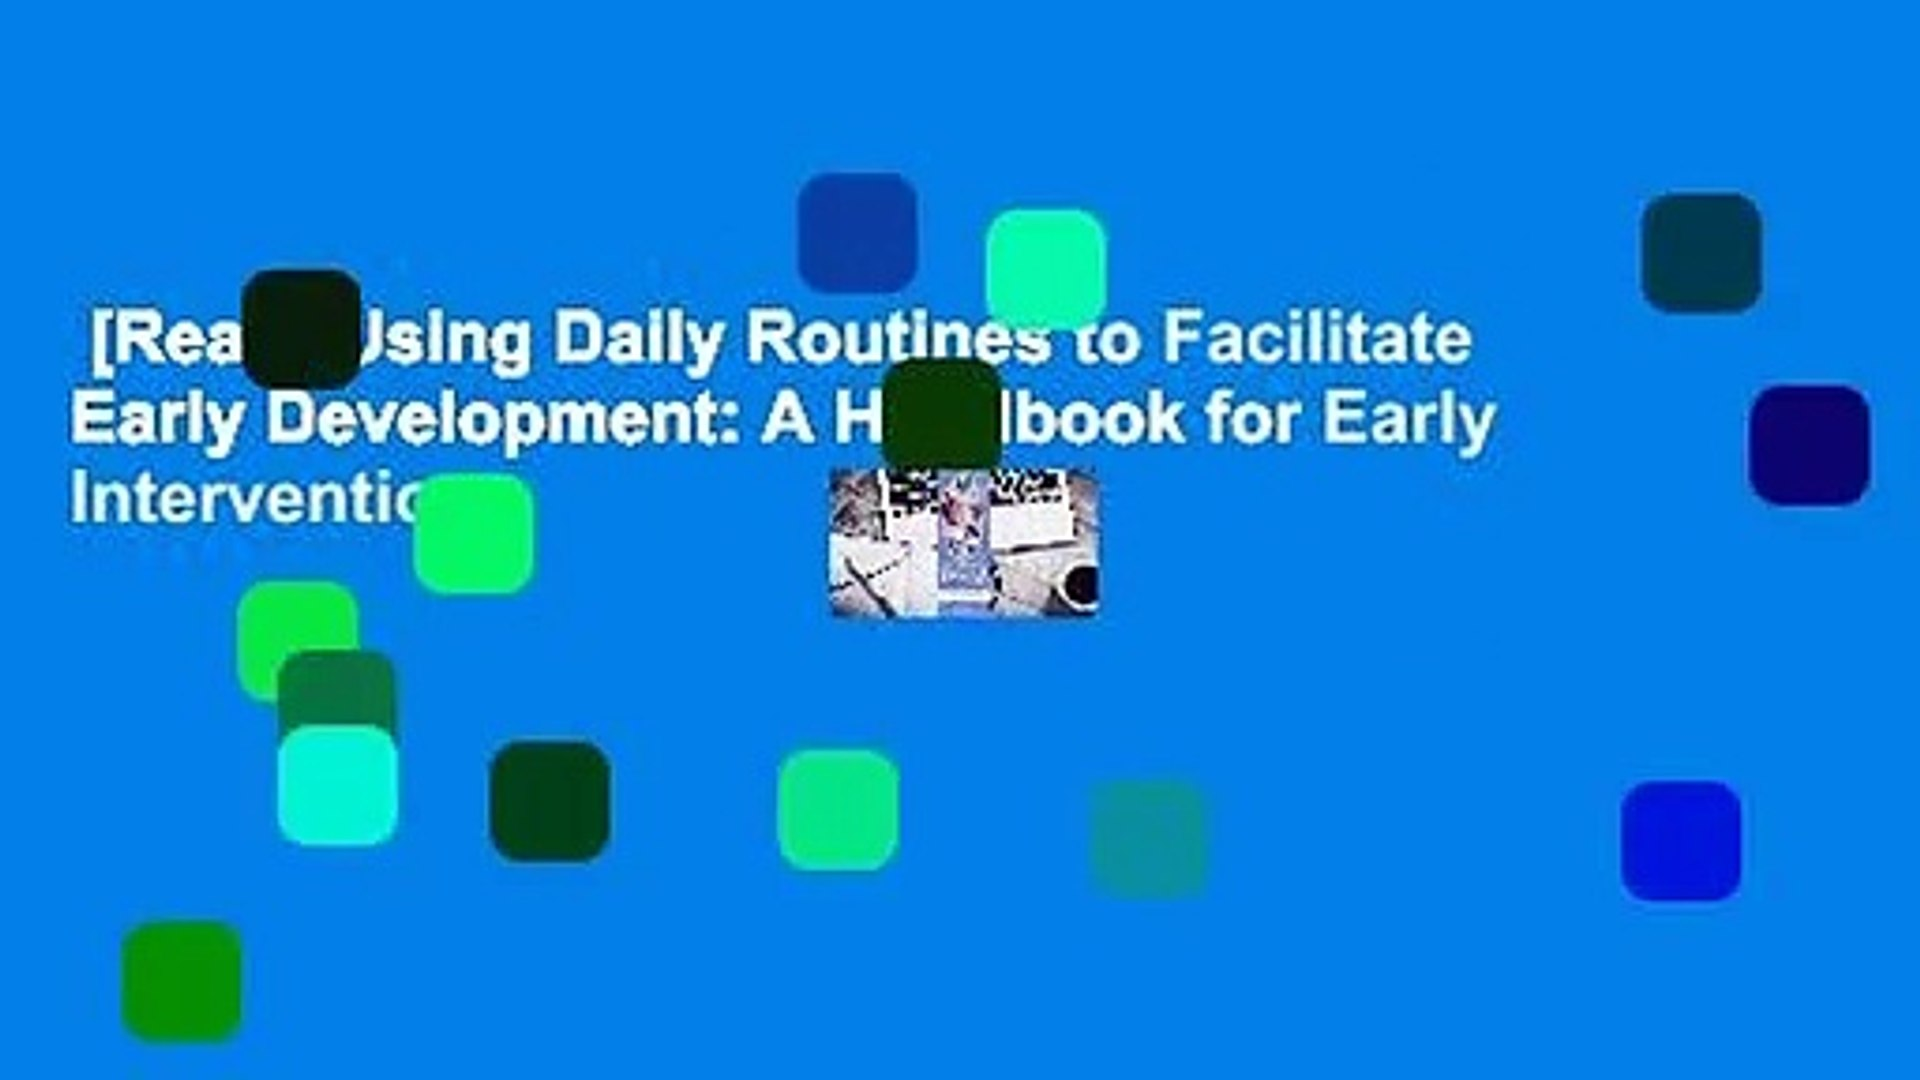 [Read] Using Daily Routines to Facilitate Early Development: A Handbook for Early Intervention